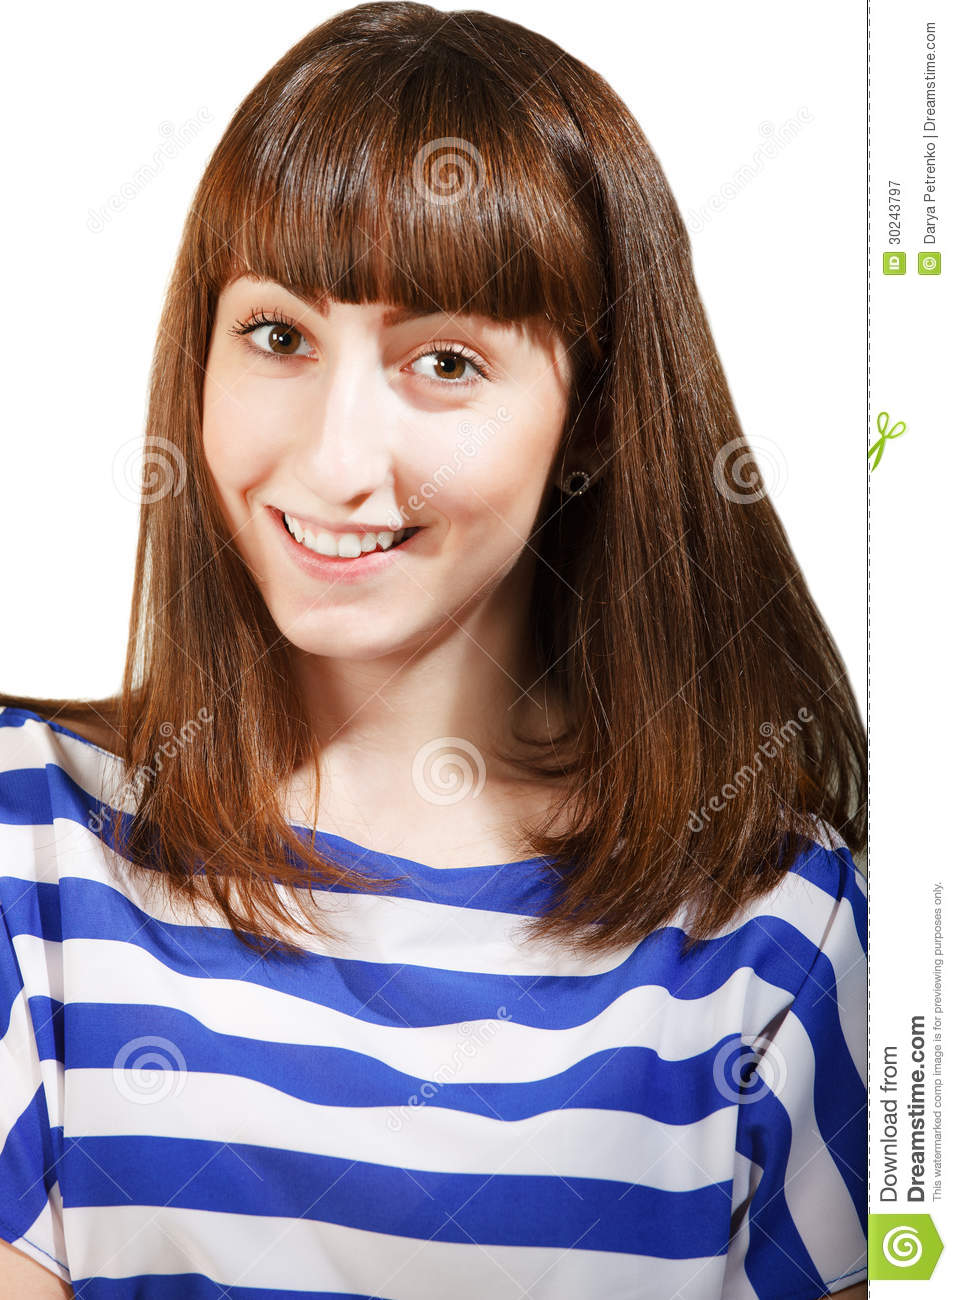 Portrait of a charming young teen girl royalty free stock photography image 30243797 - Charming teenage girls image ...